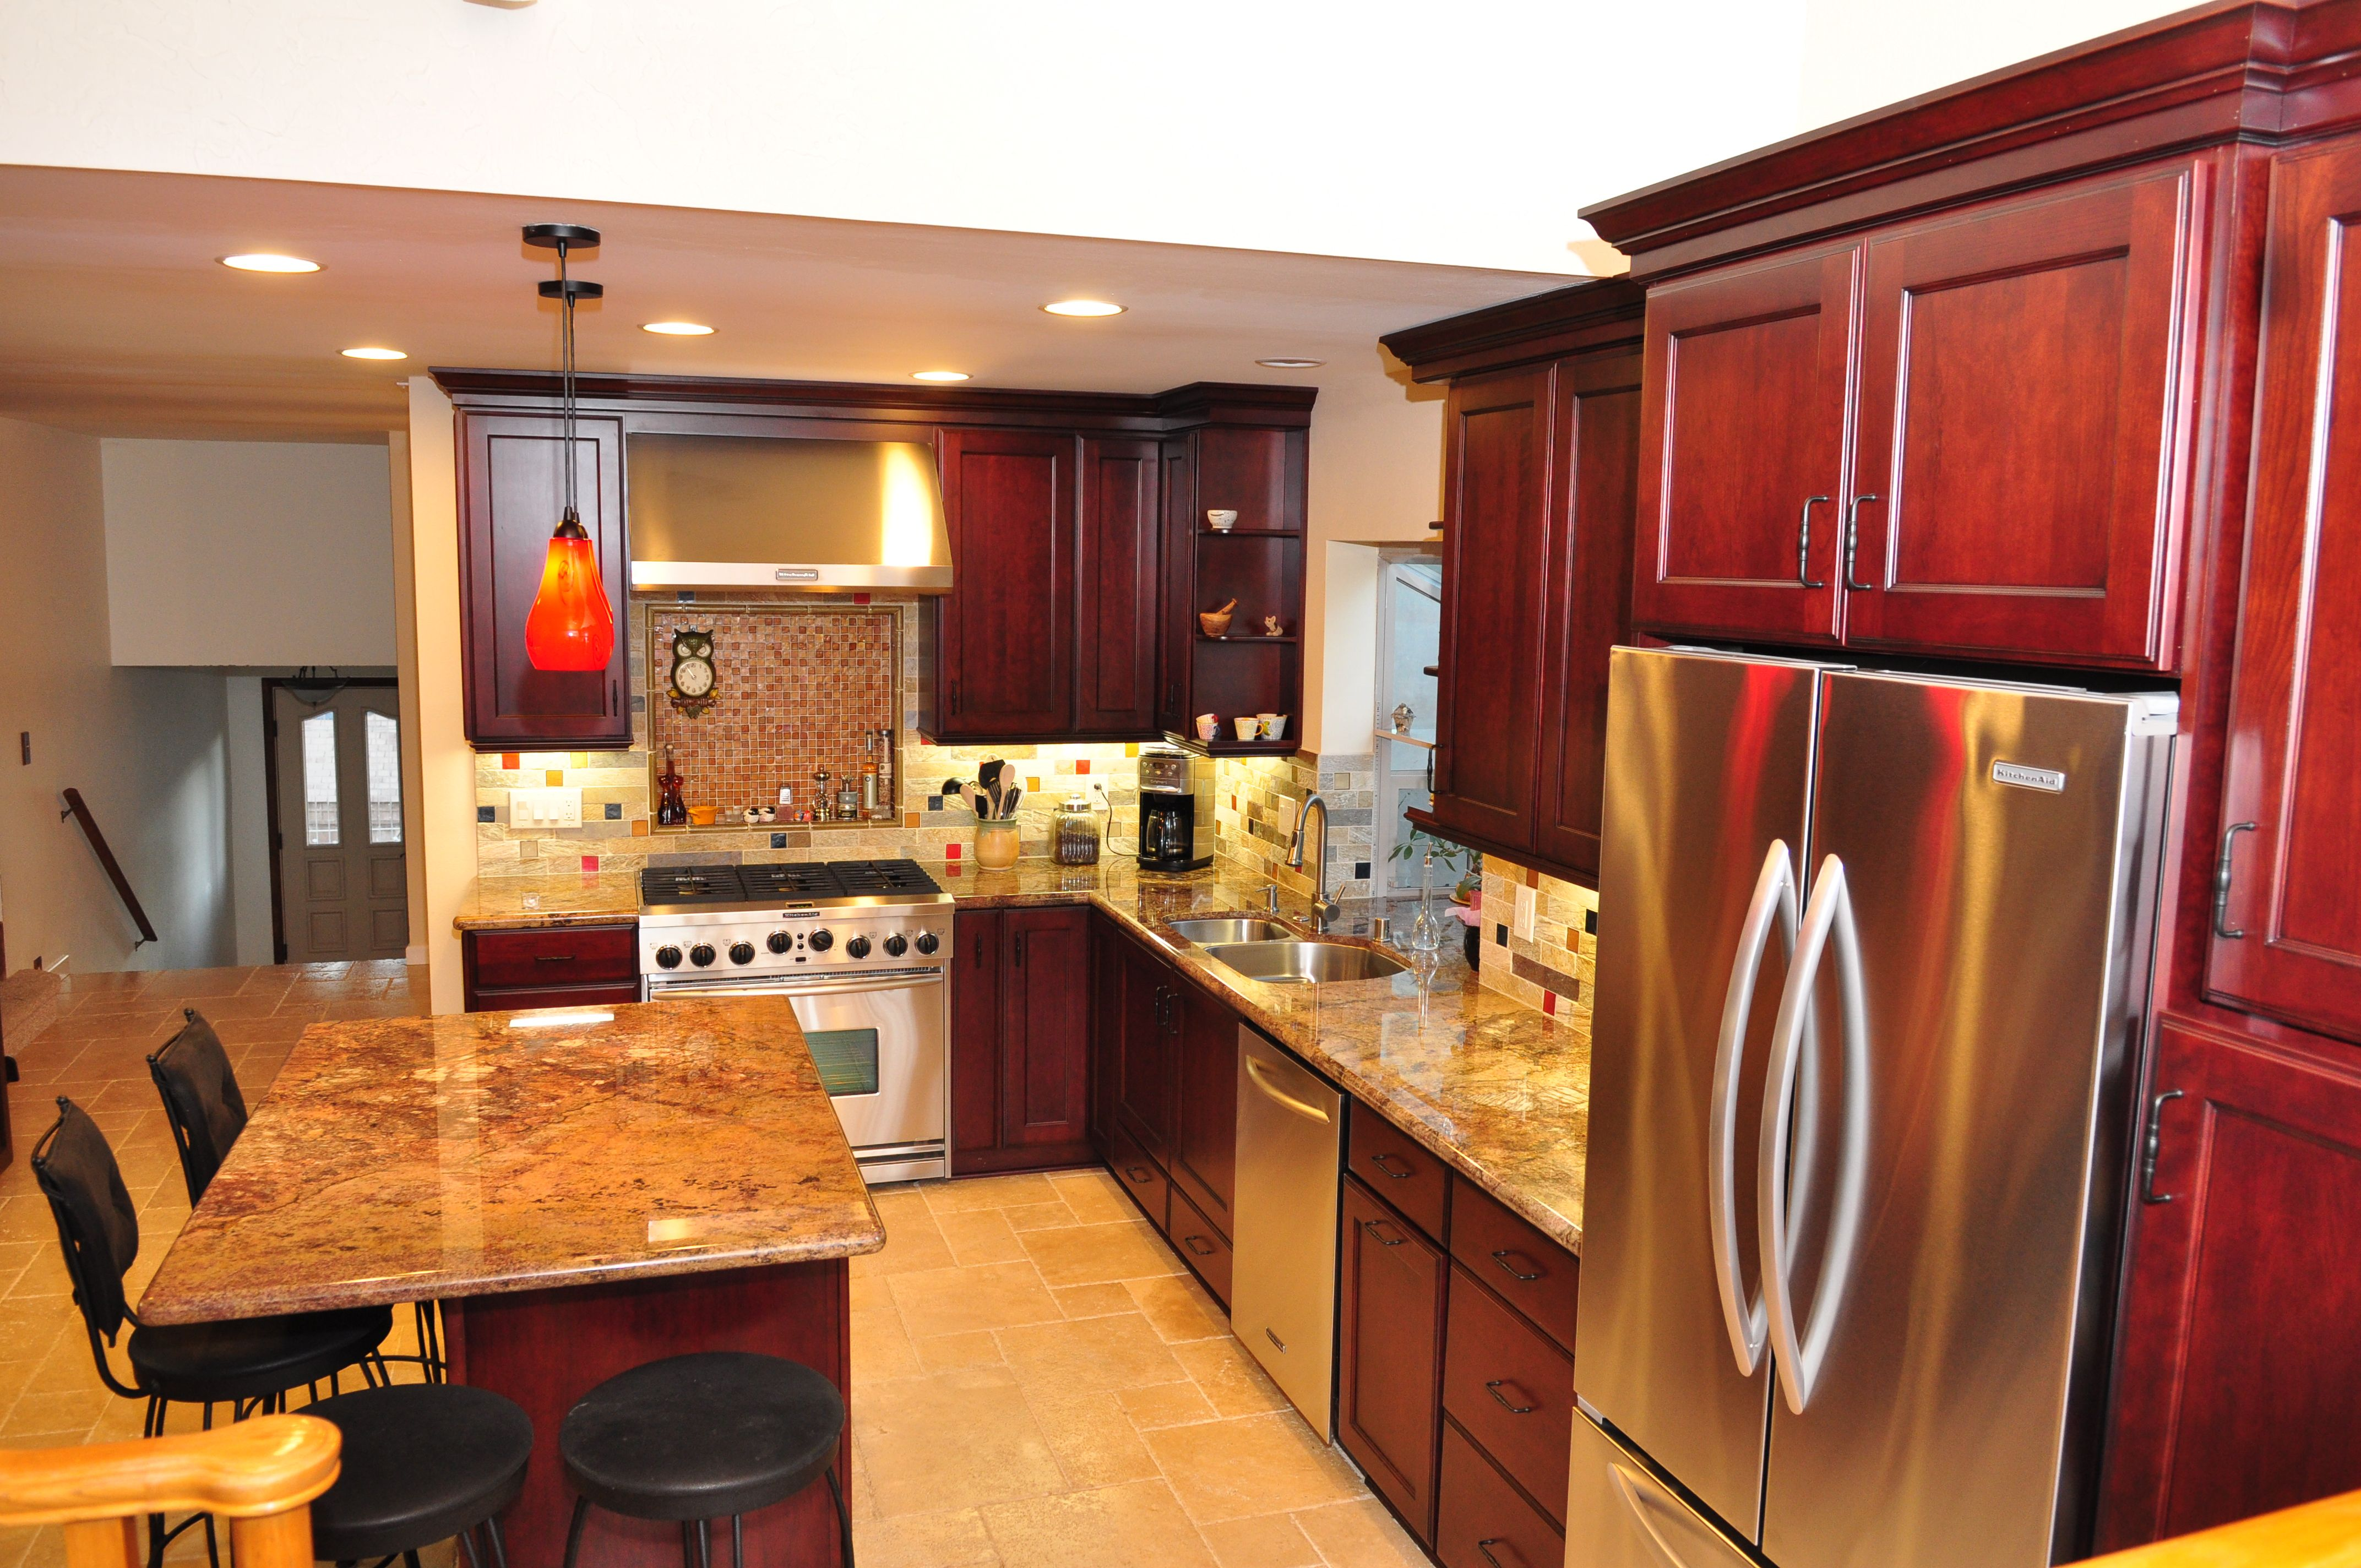 Kitchensetc Of Ventura County Omega Cabinetry Kitchen Inspirations Beautiful Kitchens